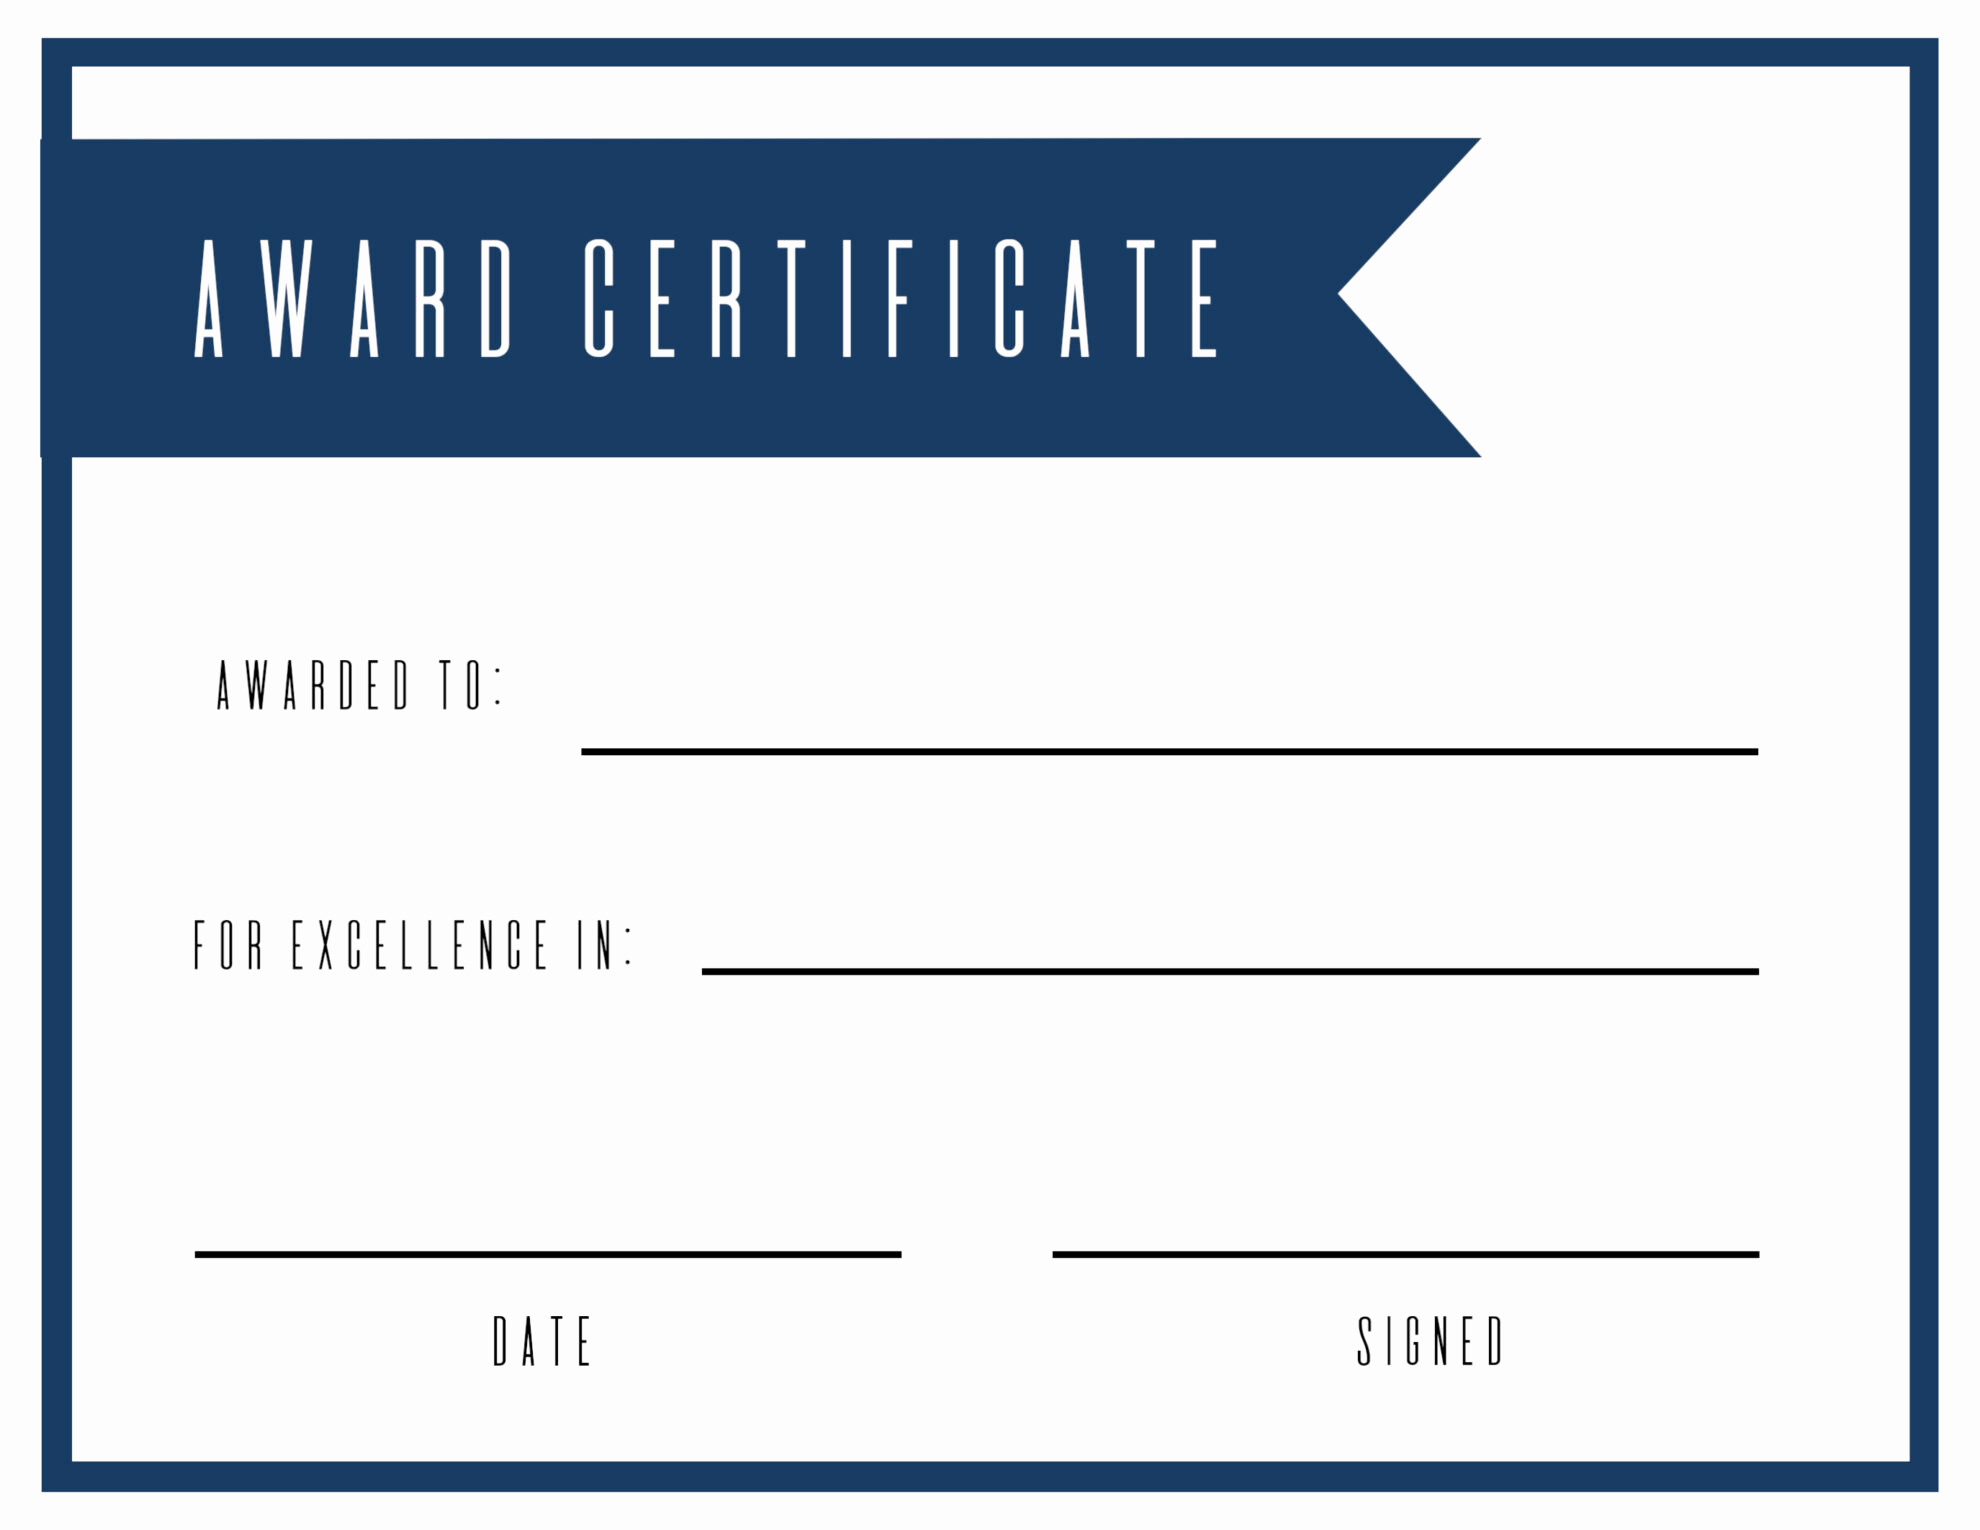 Award Certificate Template Free Best Of Free Printable Award Certificate Template Paper Trail Design